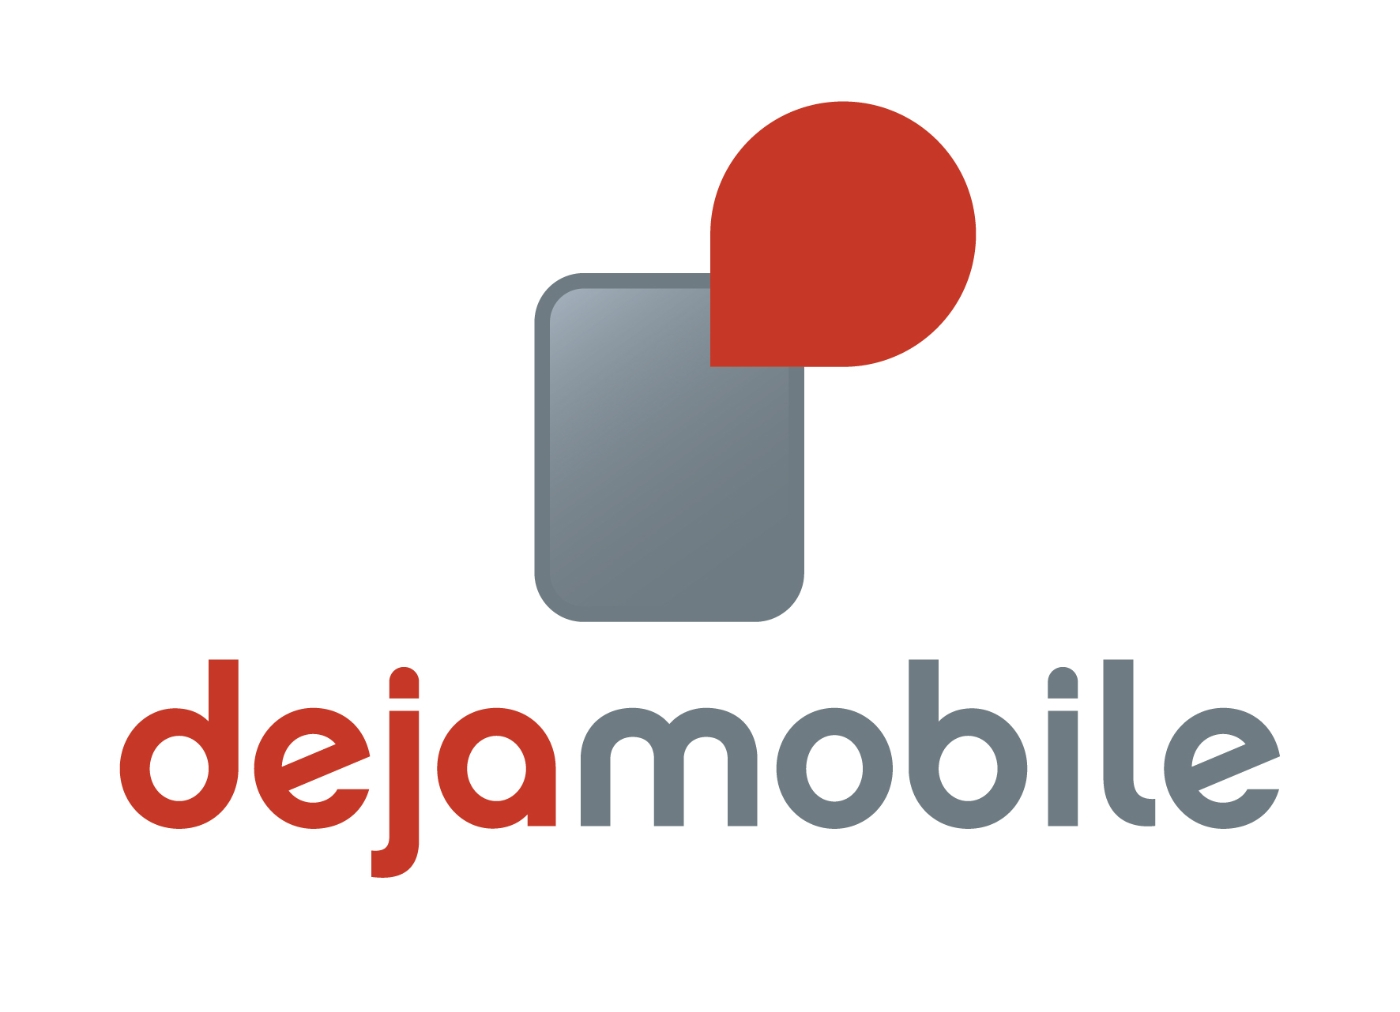 Dejamobile raises €2.5 M from Newfund